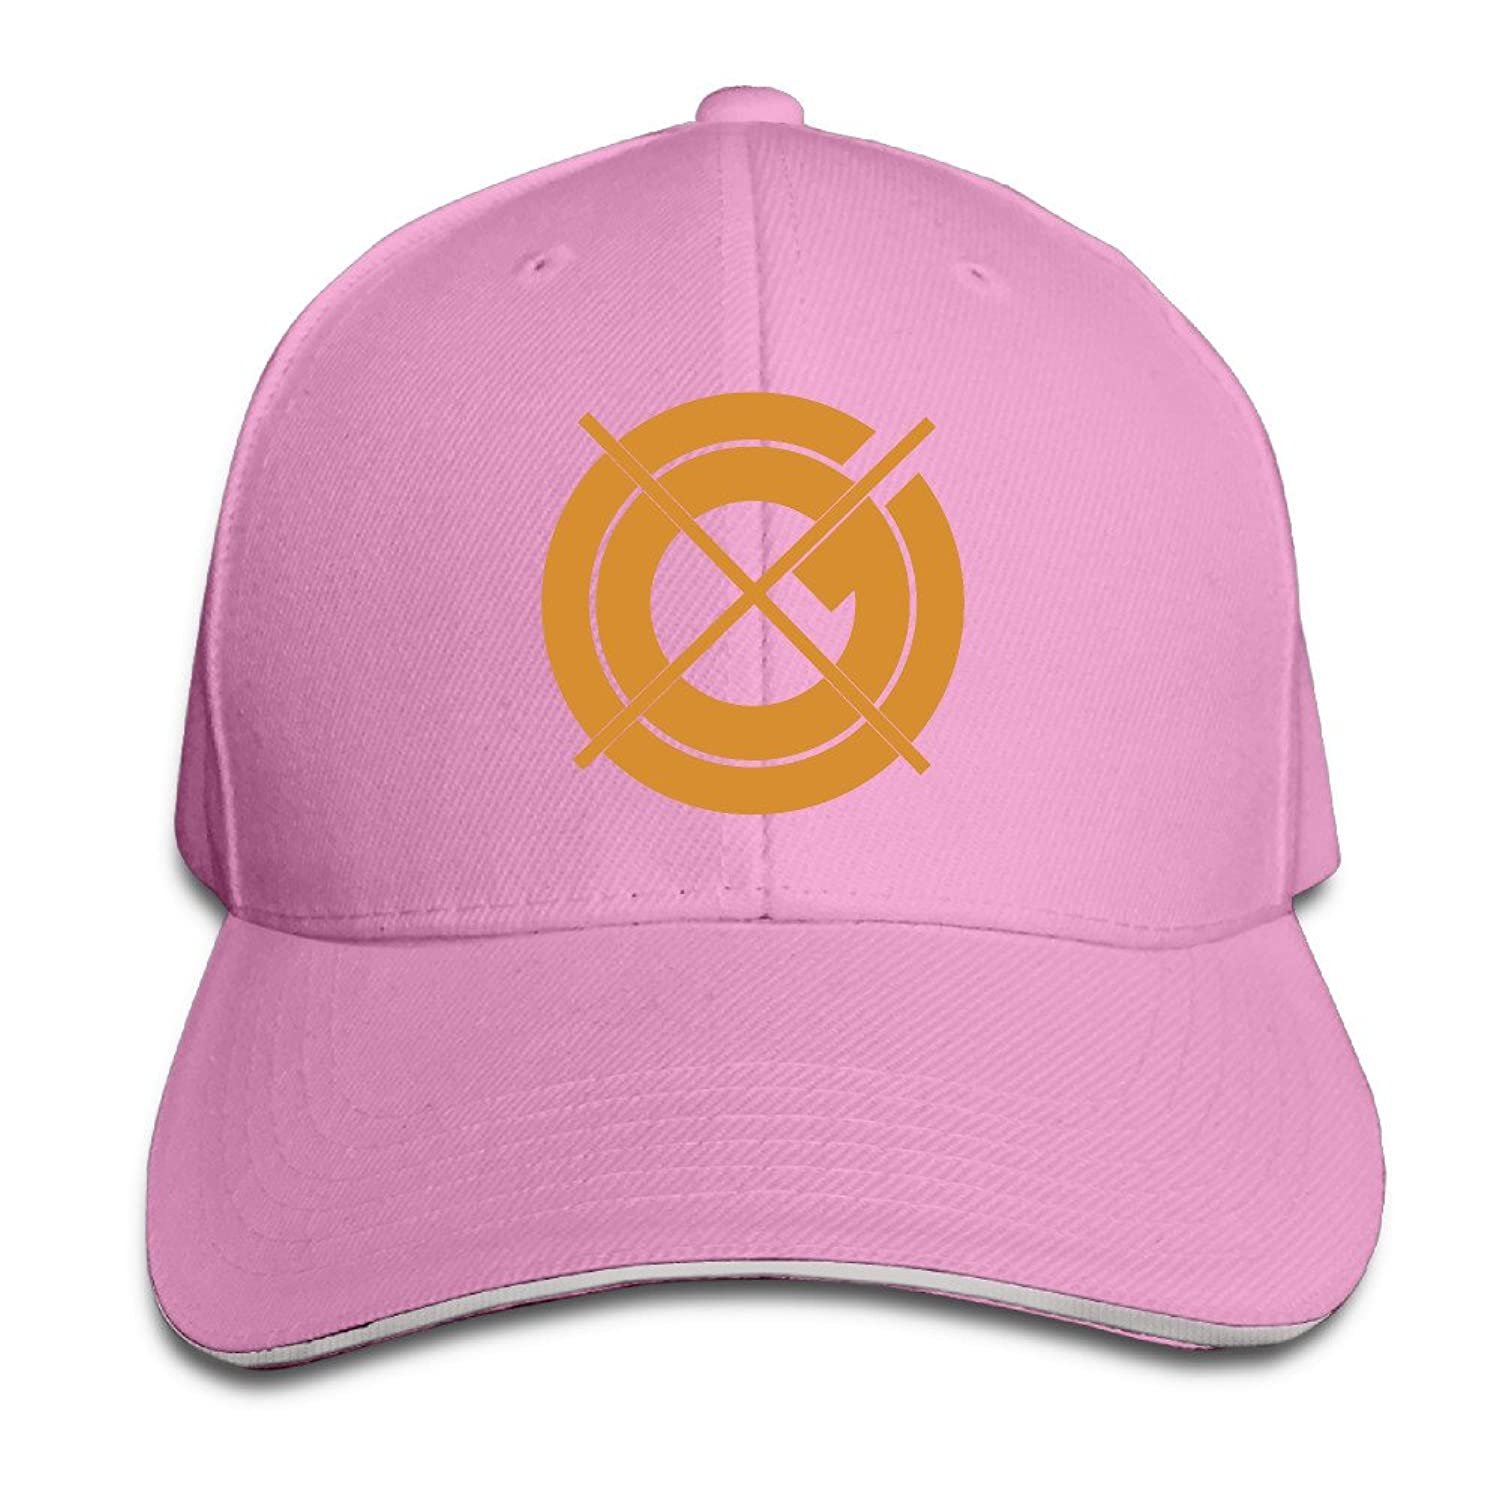 HotBB Unisex WWE Chain Gang Outdoor Sandwich Peaked Caps Hats